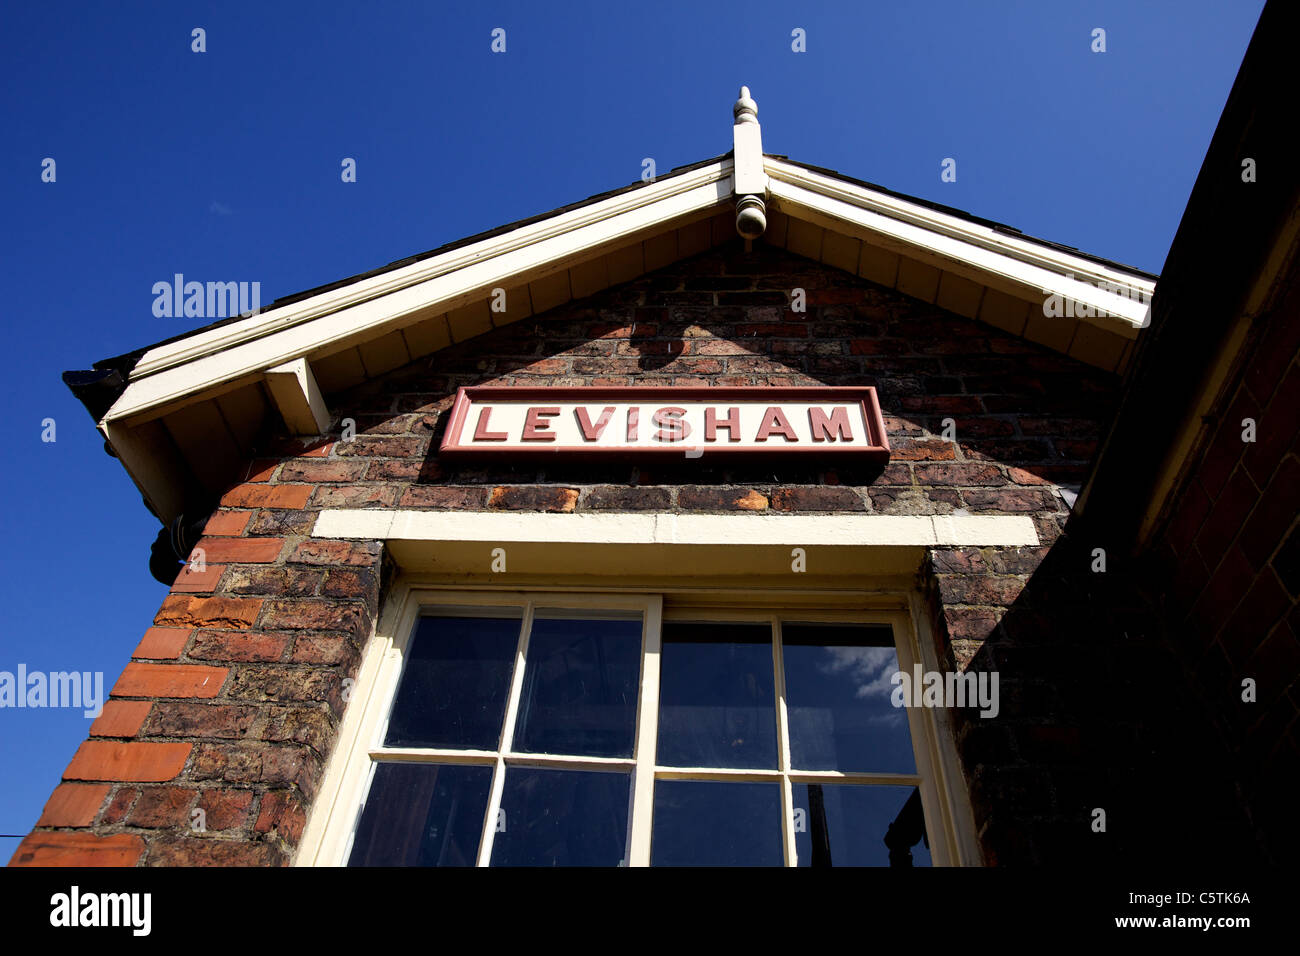 Levisham Railway Station signal box, Ryedale, North Yorkshire Moors. The station was opened in 1836 - Stock Image